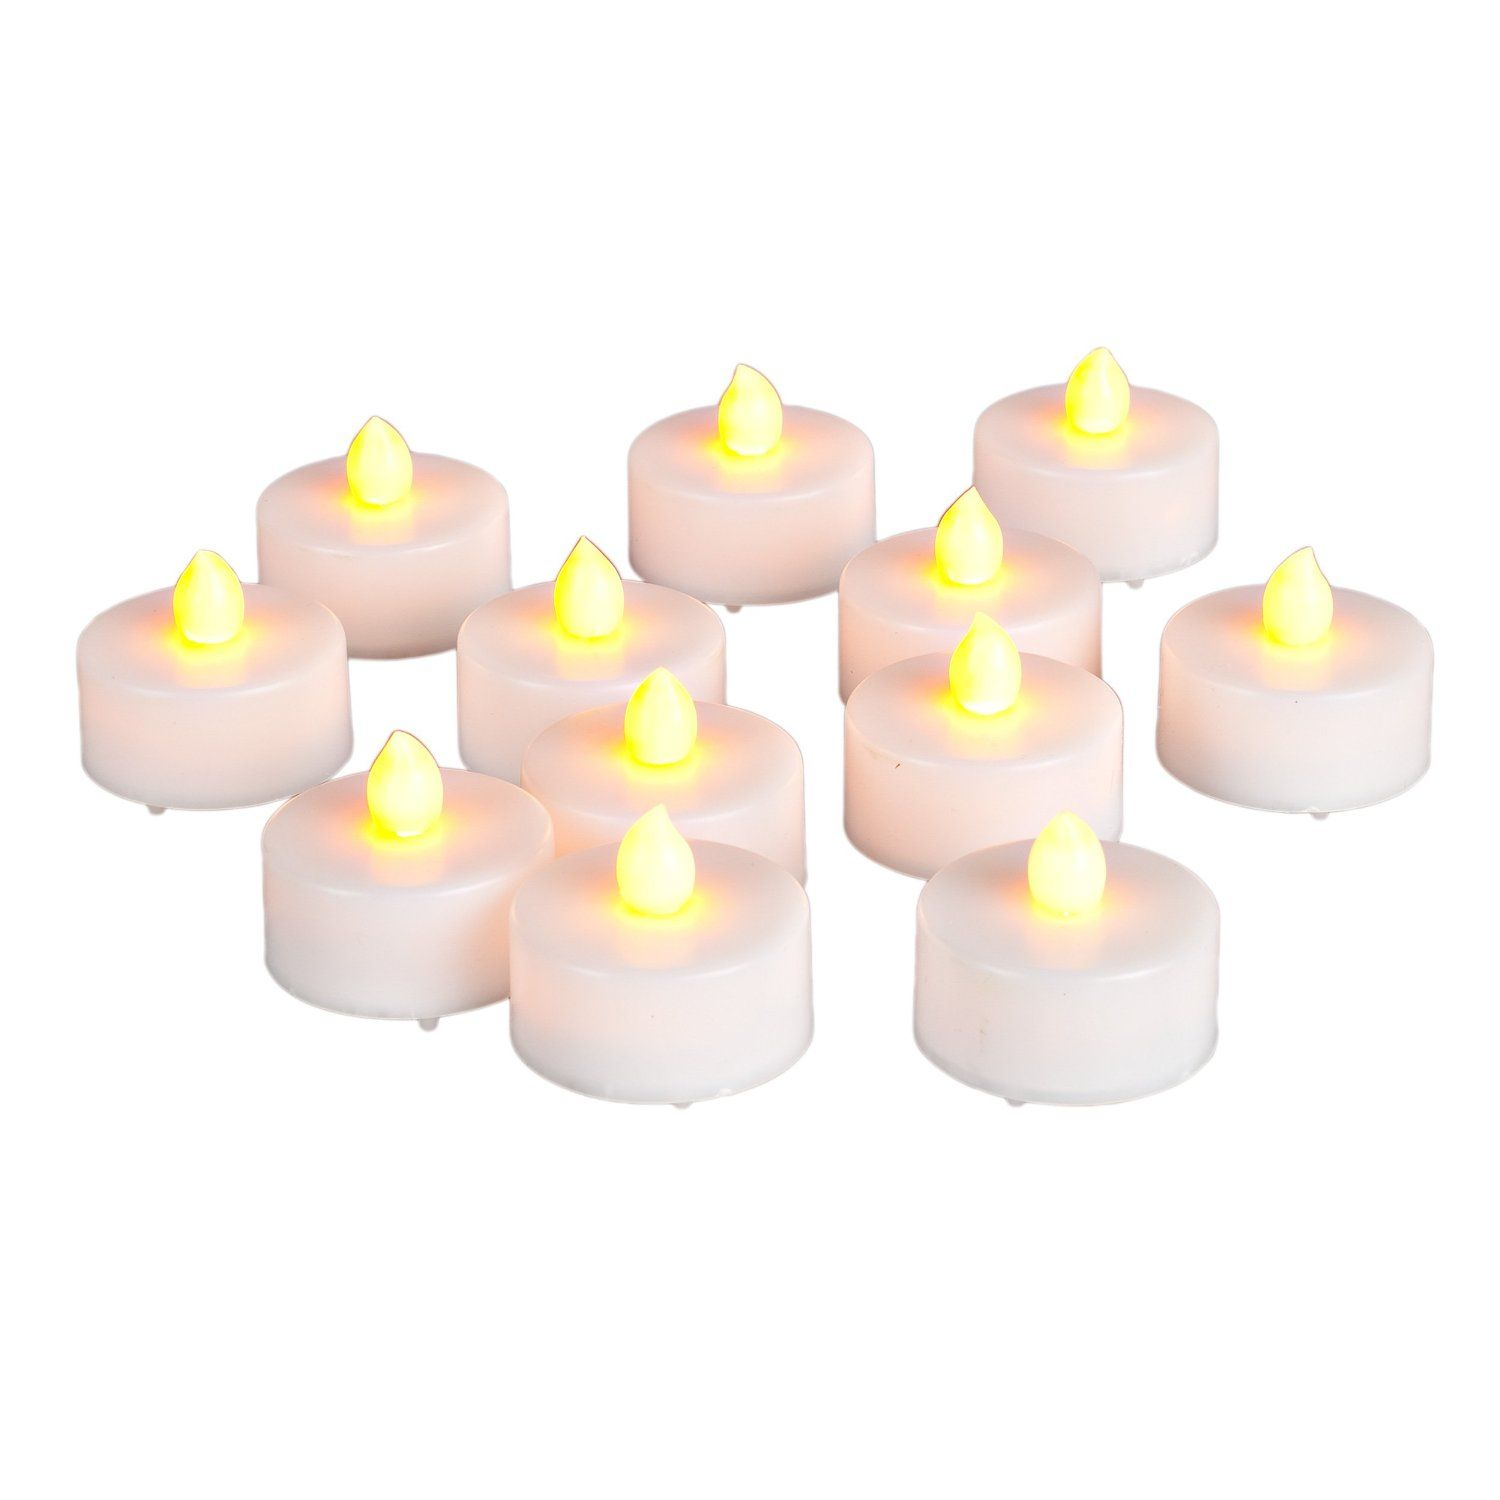 Amazoncom Everlasting Tealights Battery Operated Flamess Candles With Soft Flicker, 12 Pack